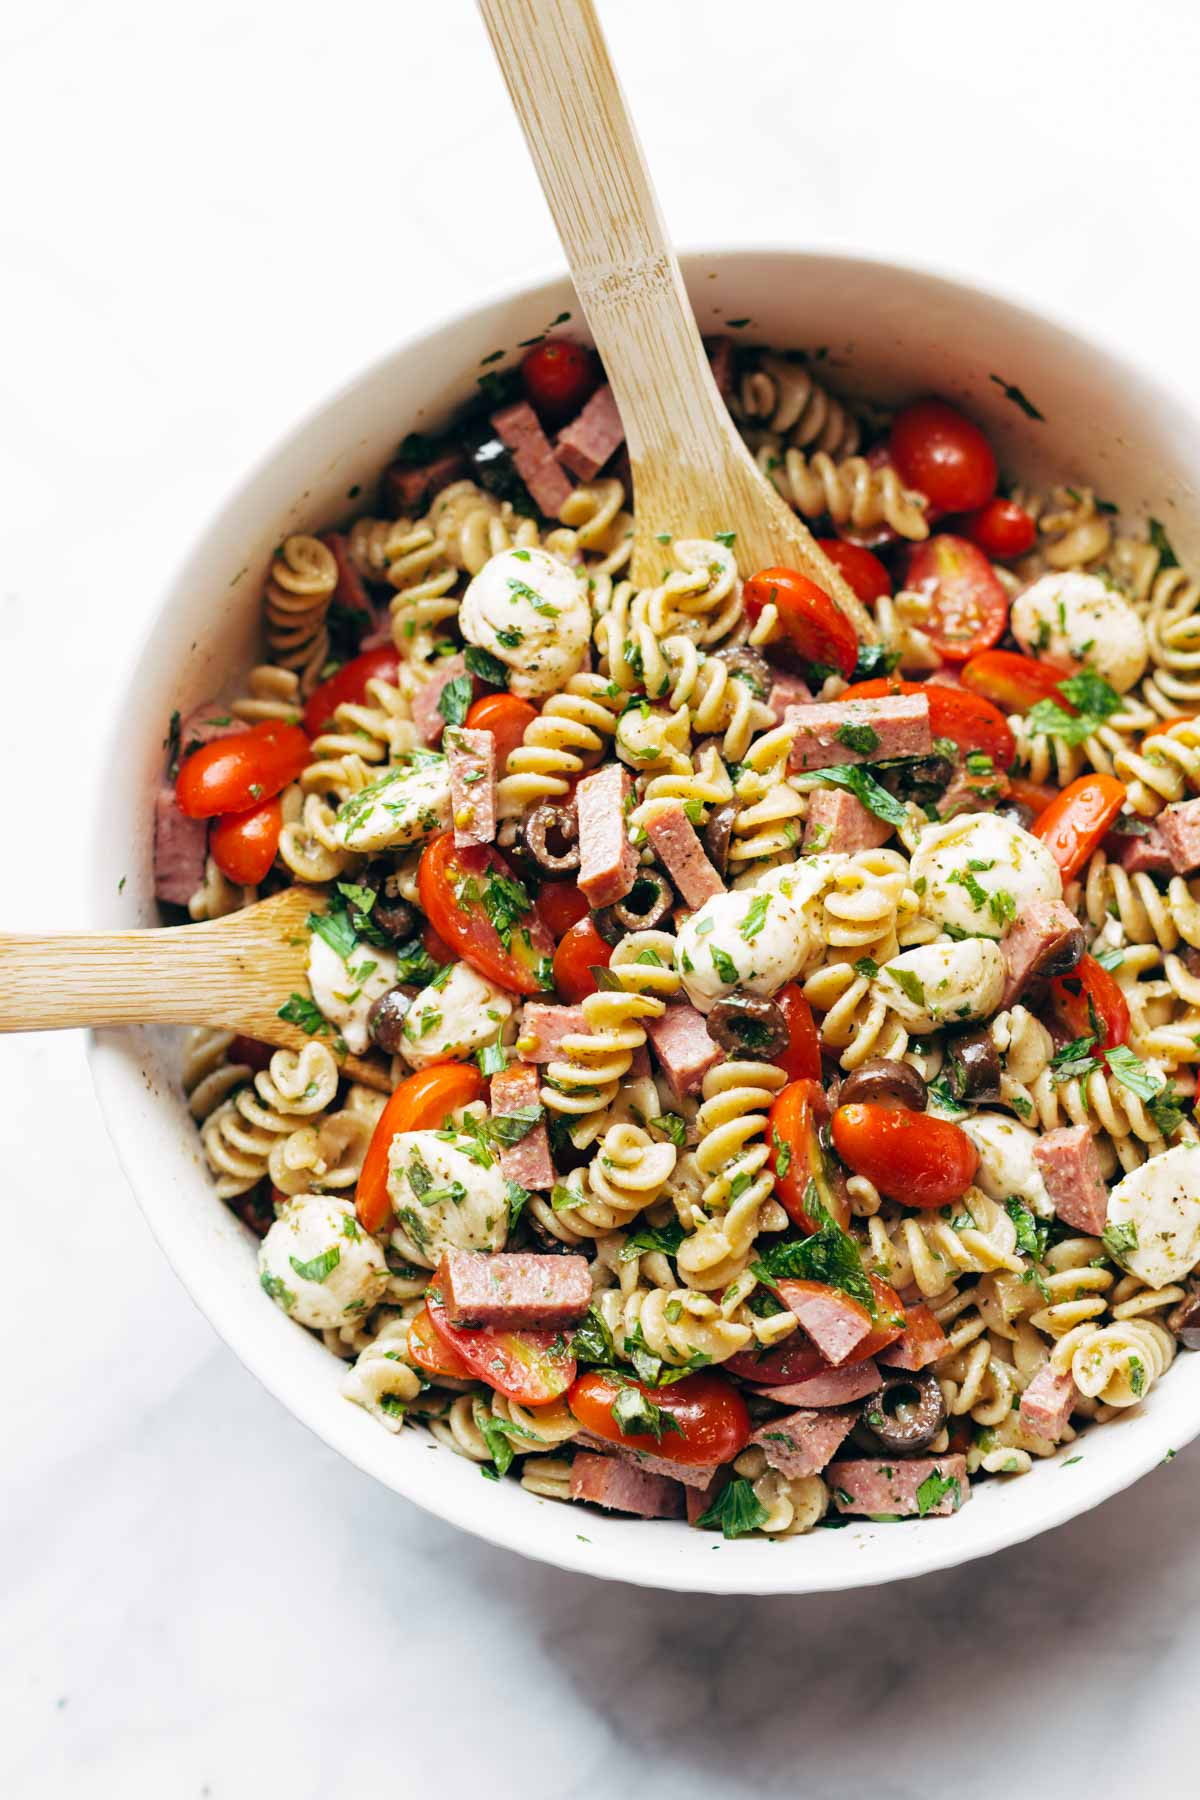 Best Summer Pasta Salad  50 recipes for summer parties plays well with butter